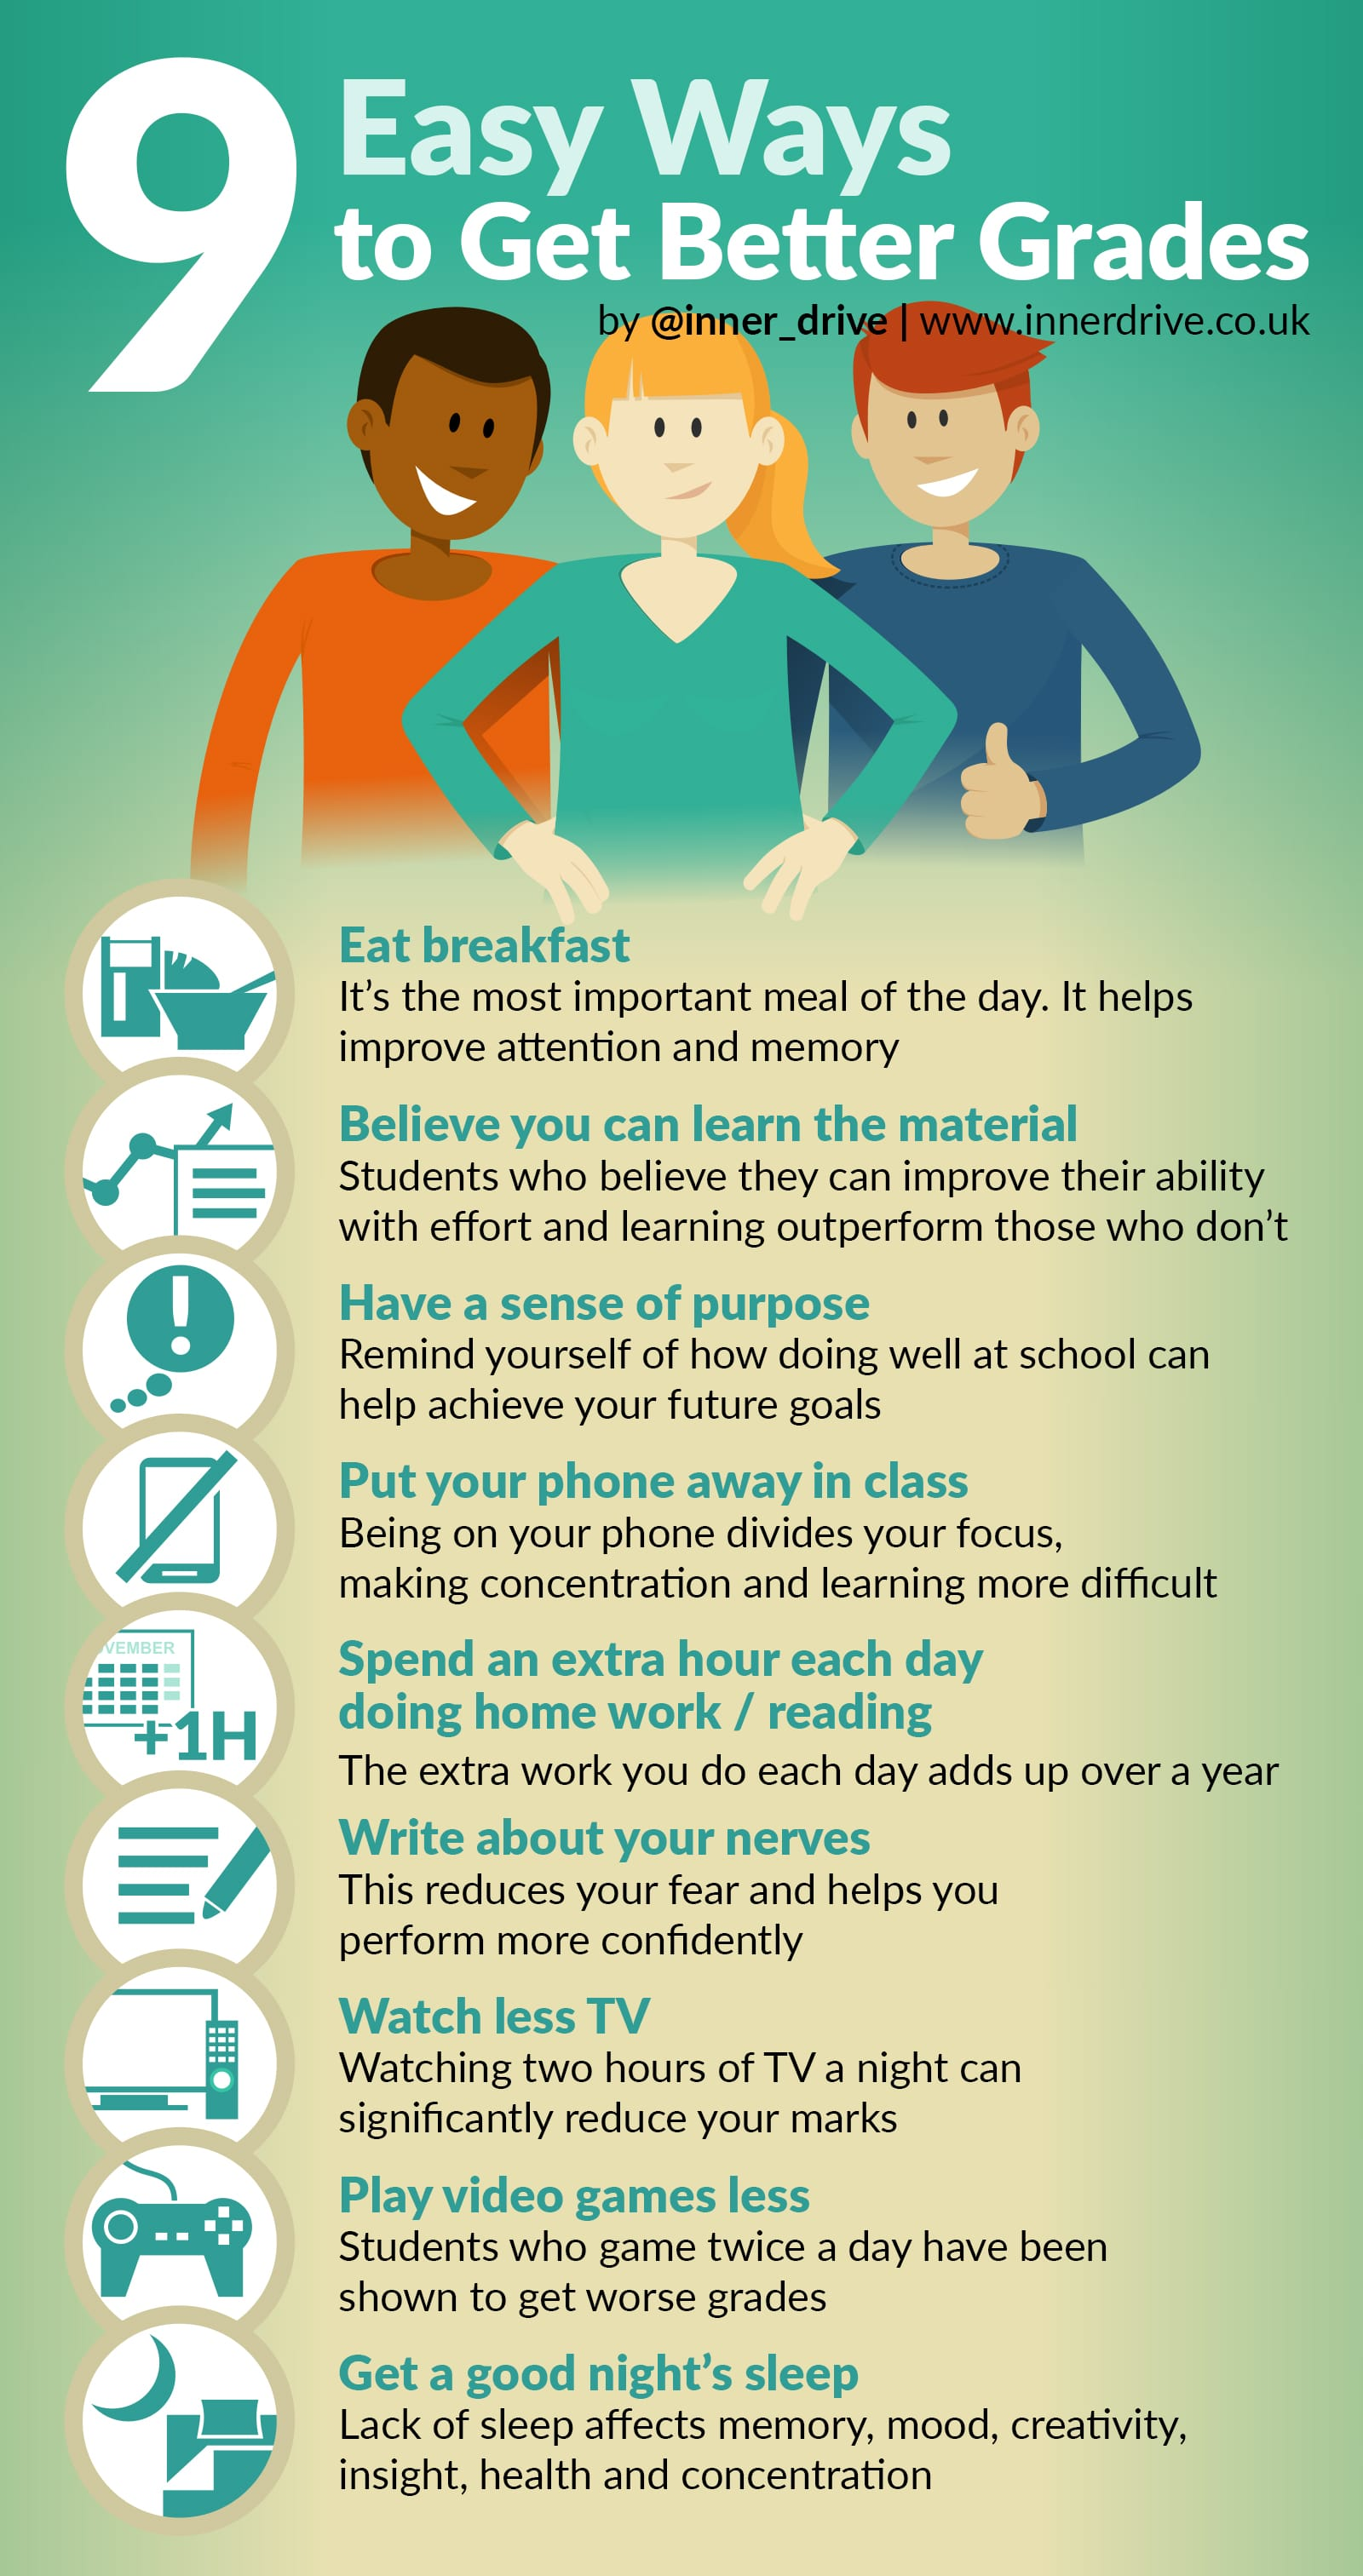 9 easy ways to get better grades infographic